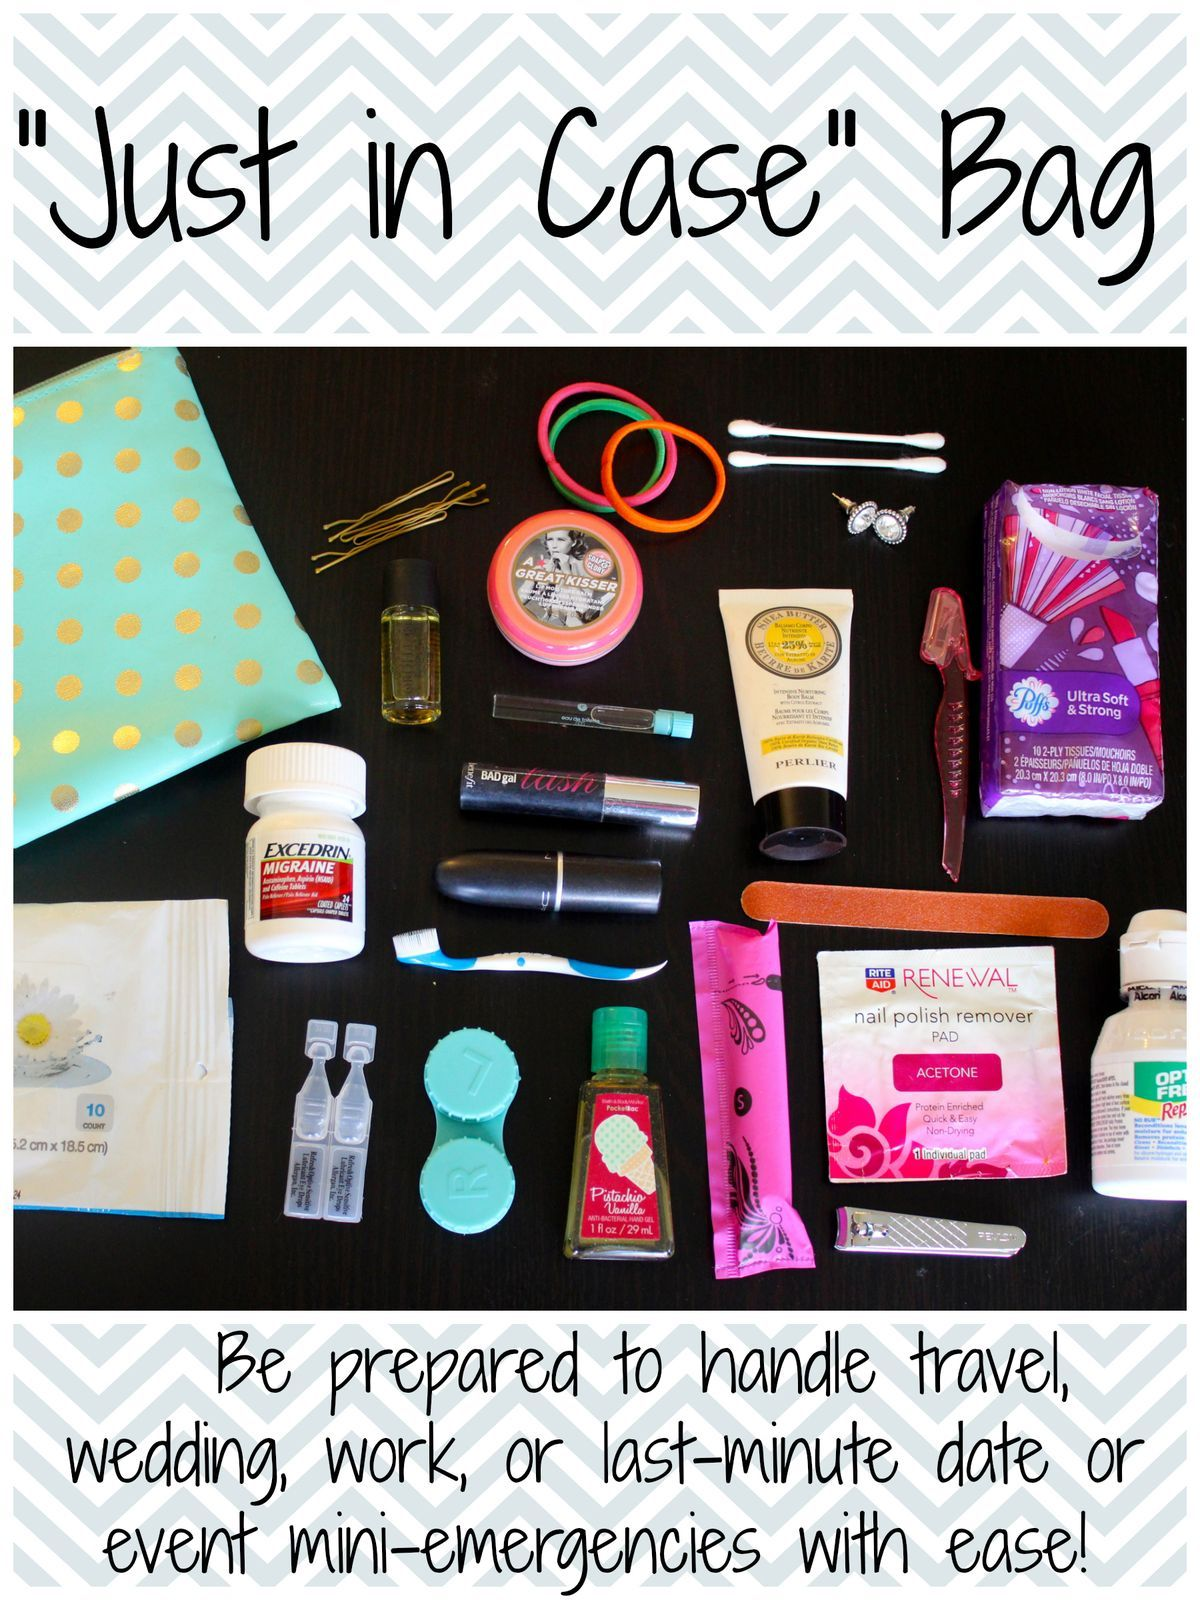 Gifts for Best Friend 10 Fun and Cool Ideas Vivid's